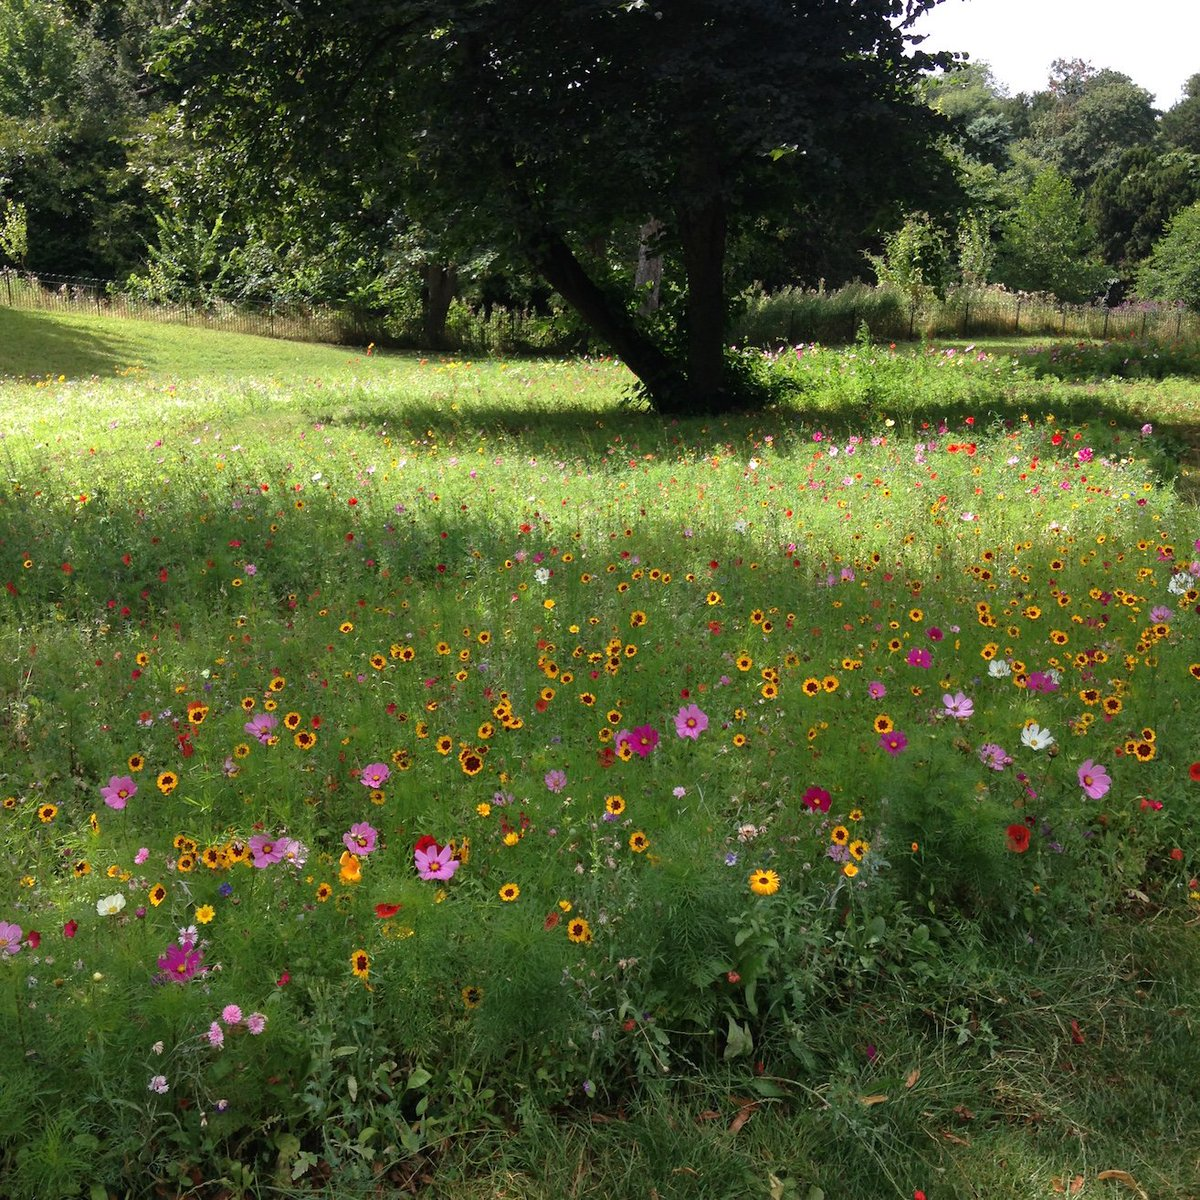 A cheering sight: the wild flowers that have recently sprung up in the grounds of @Chiswick_House https://t.co/yLB4QXjBtj